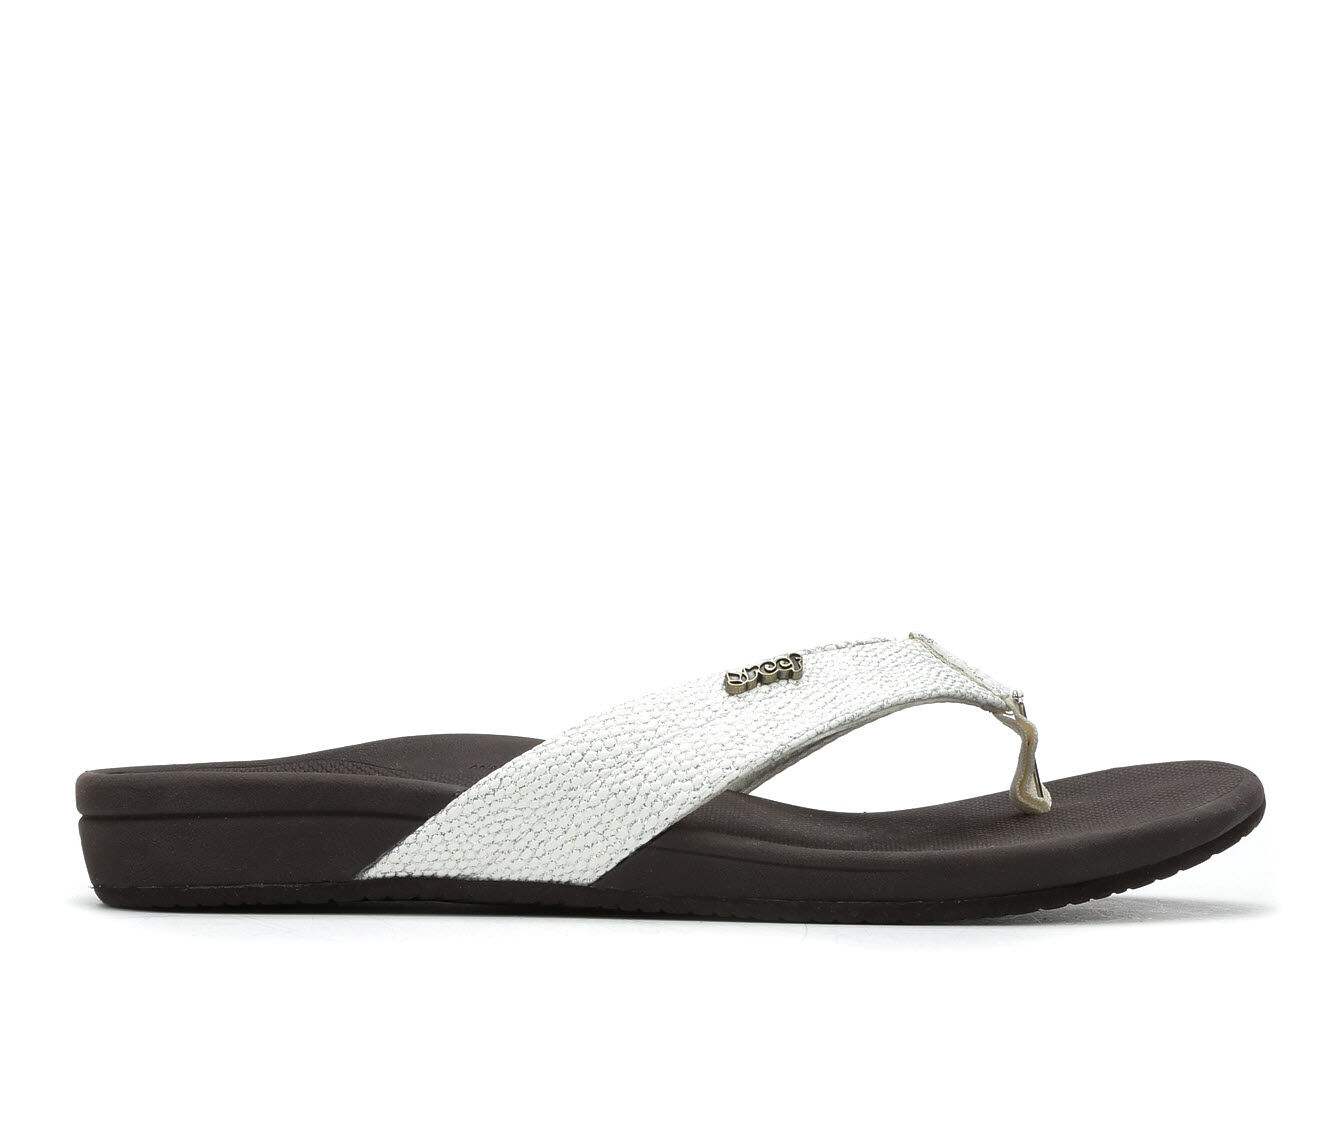 Women's Reef Reef Ortho-Spring Sandals Brown/White